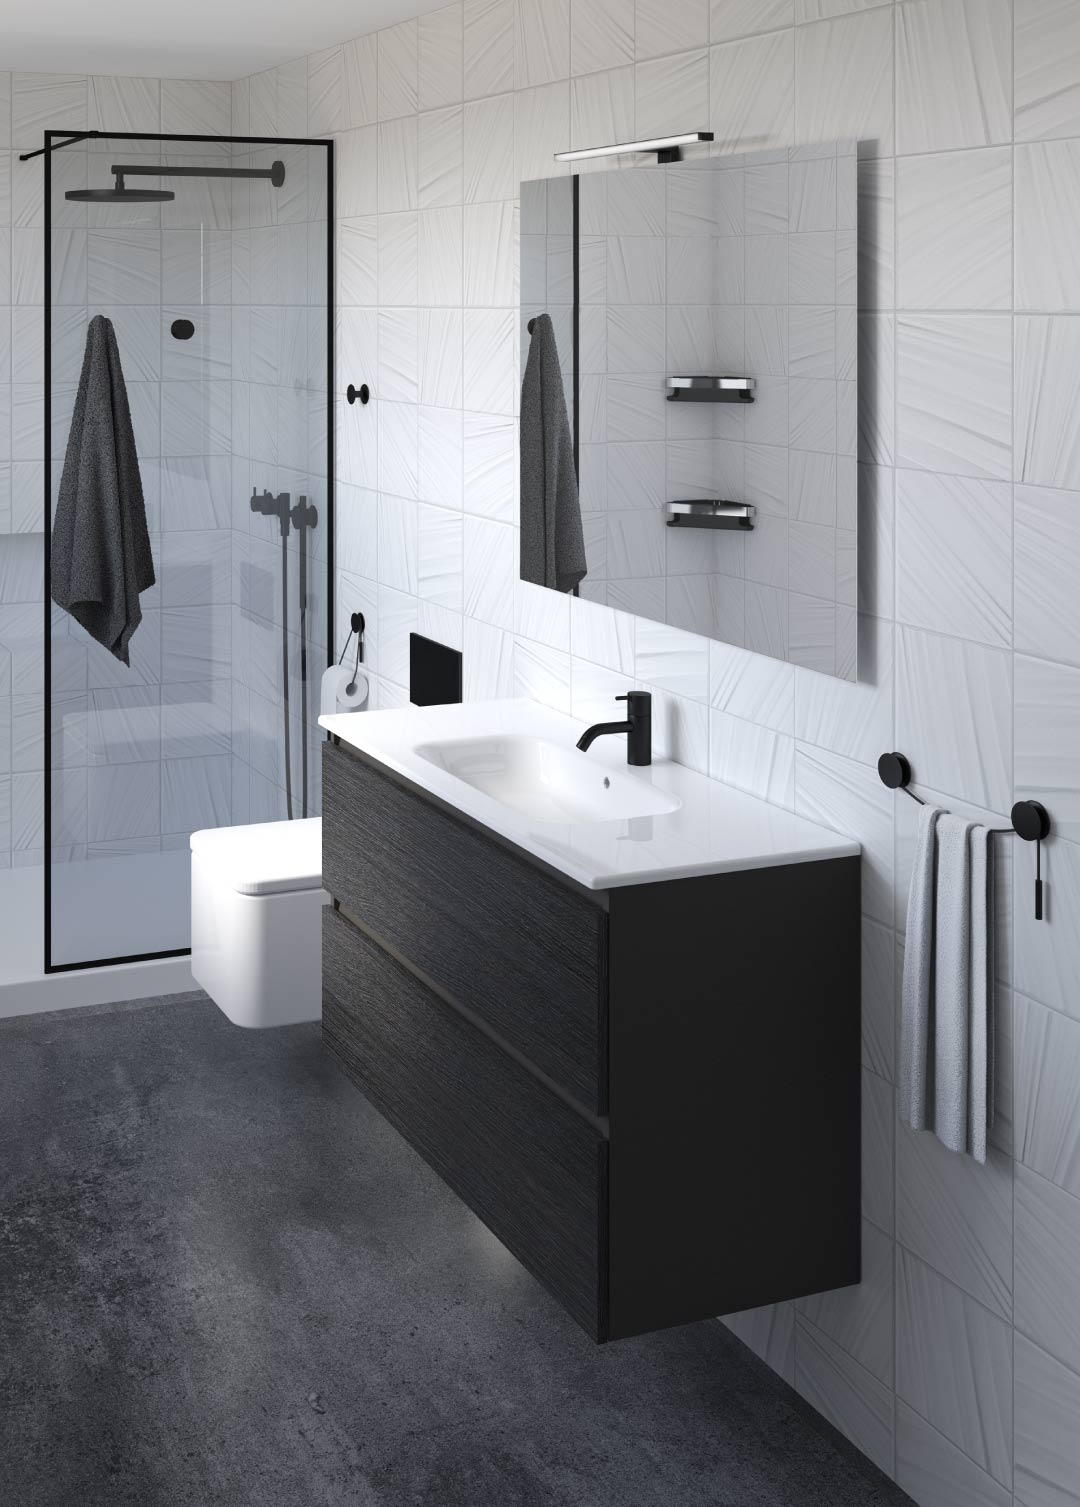 Bathroom Vanities And Cabinets Do They Need To Match